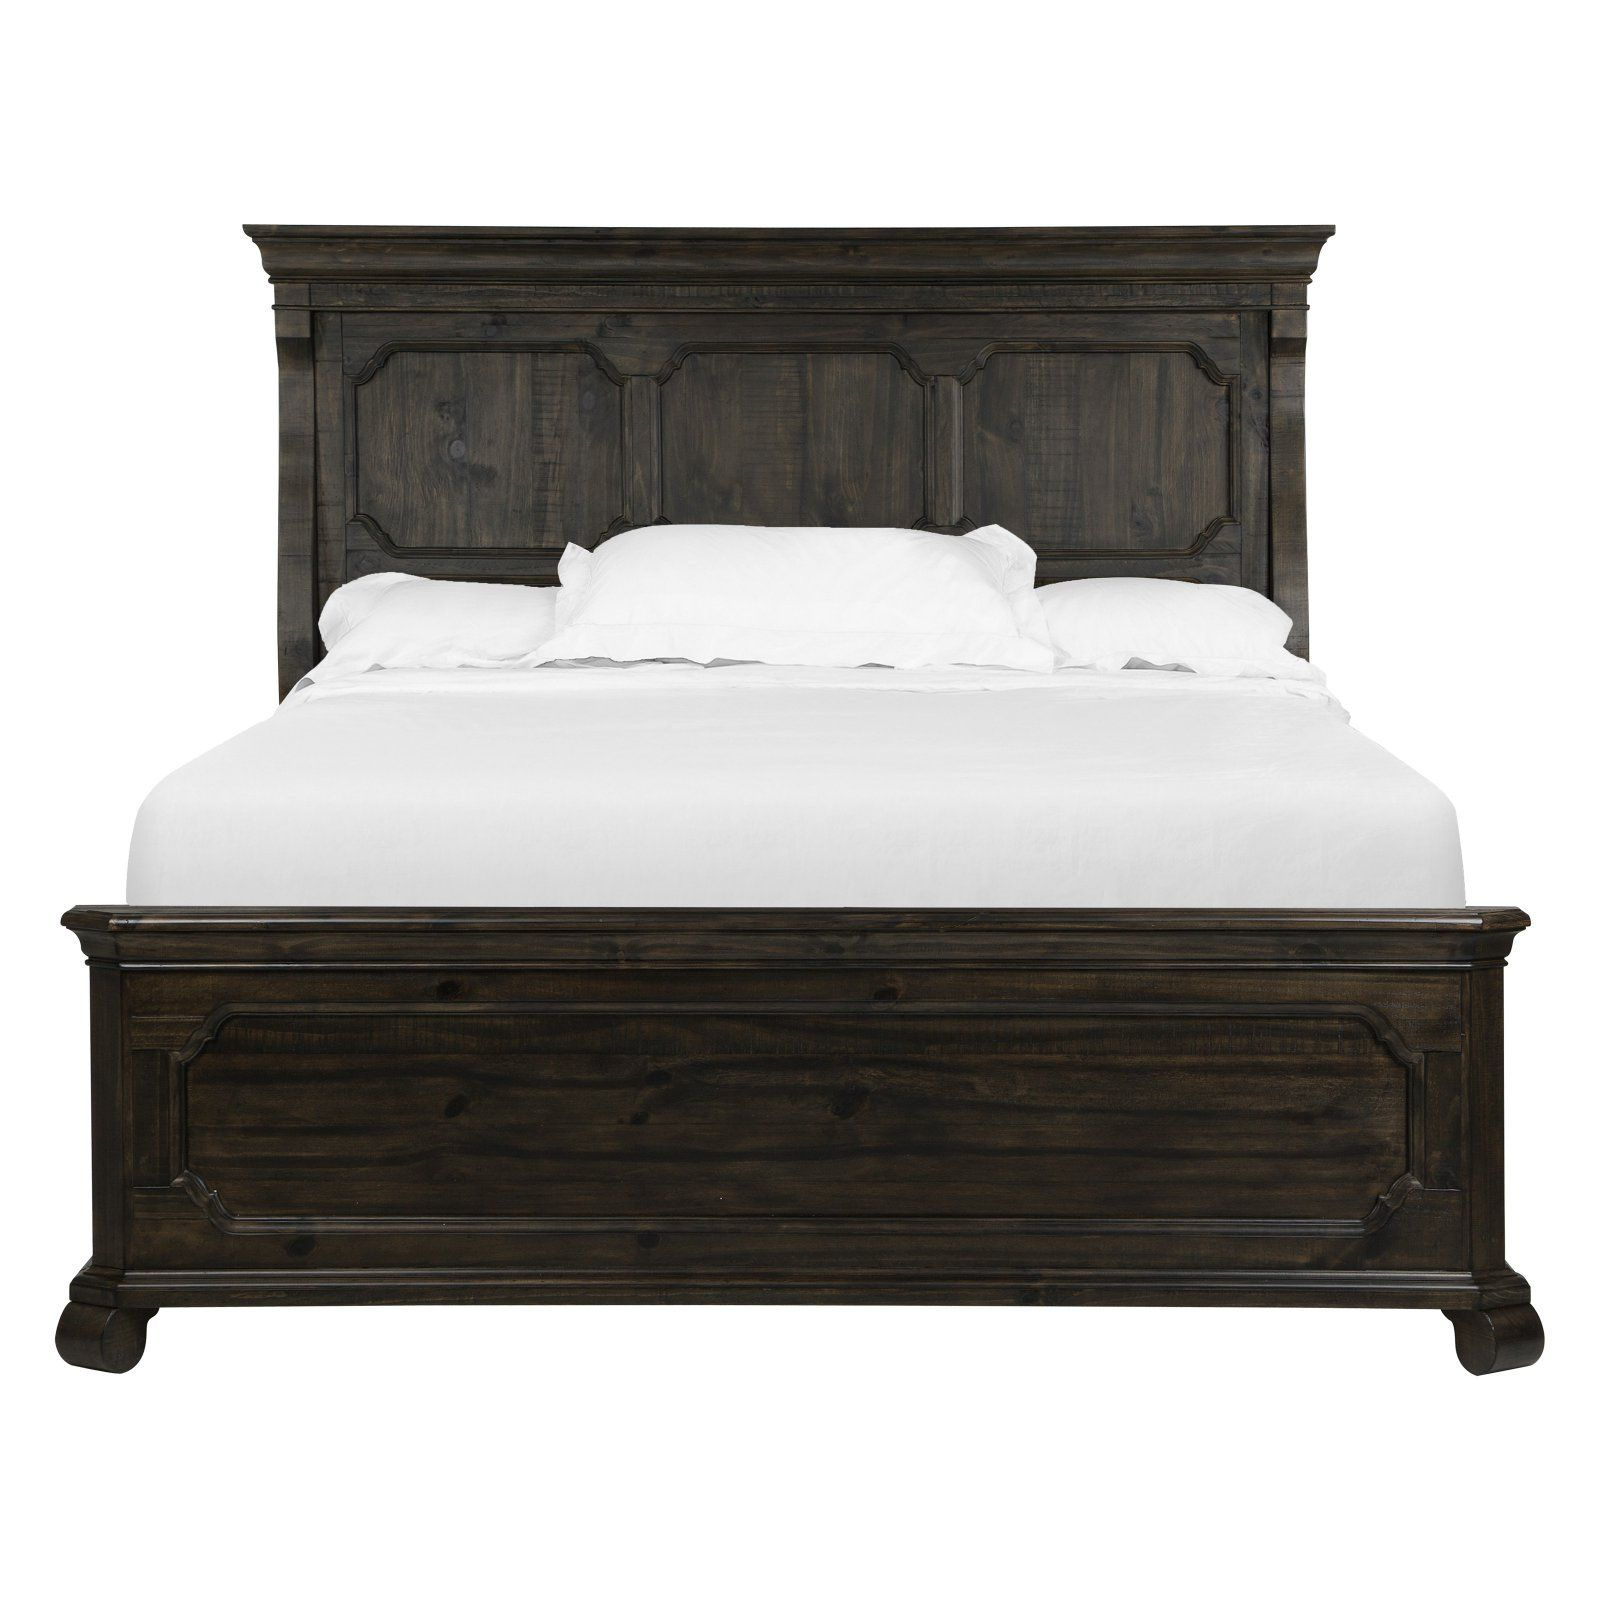 Magnussen Bellamy Traditional Peppercorn Panel Bed, Size